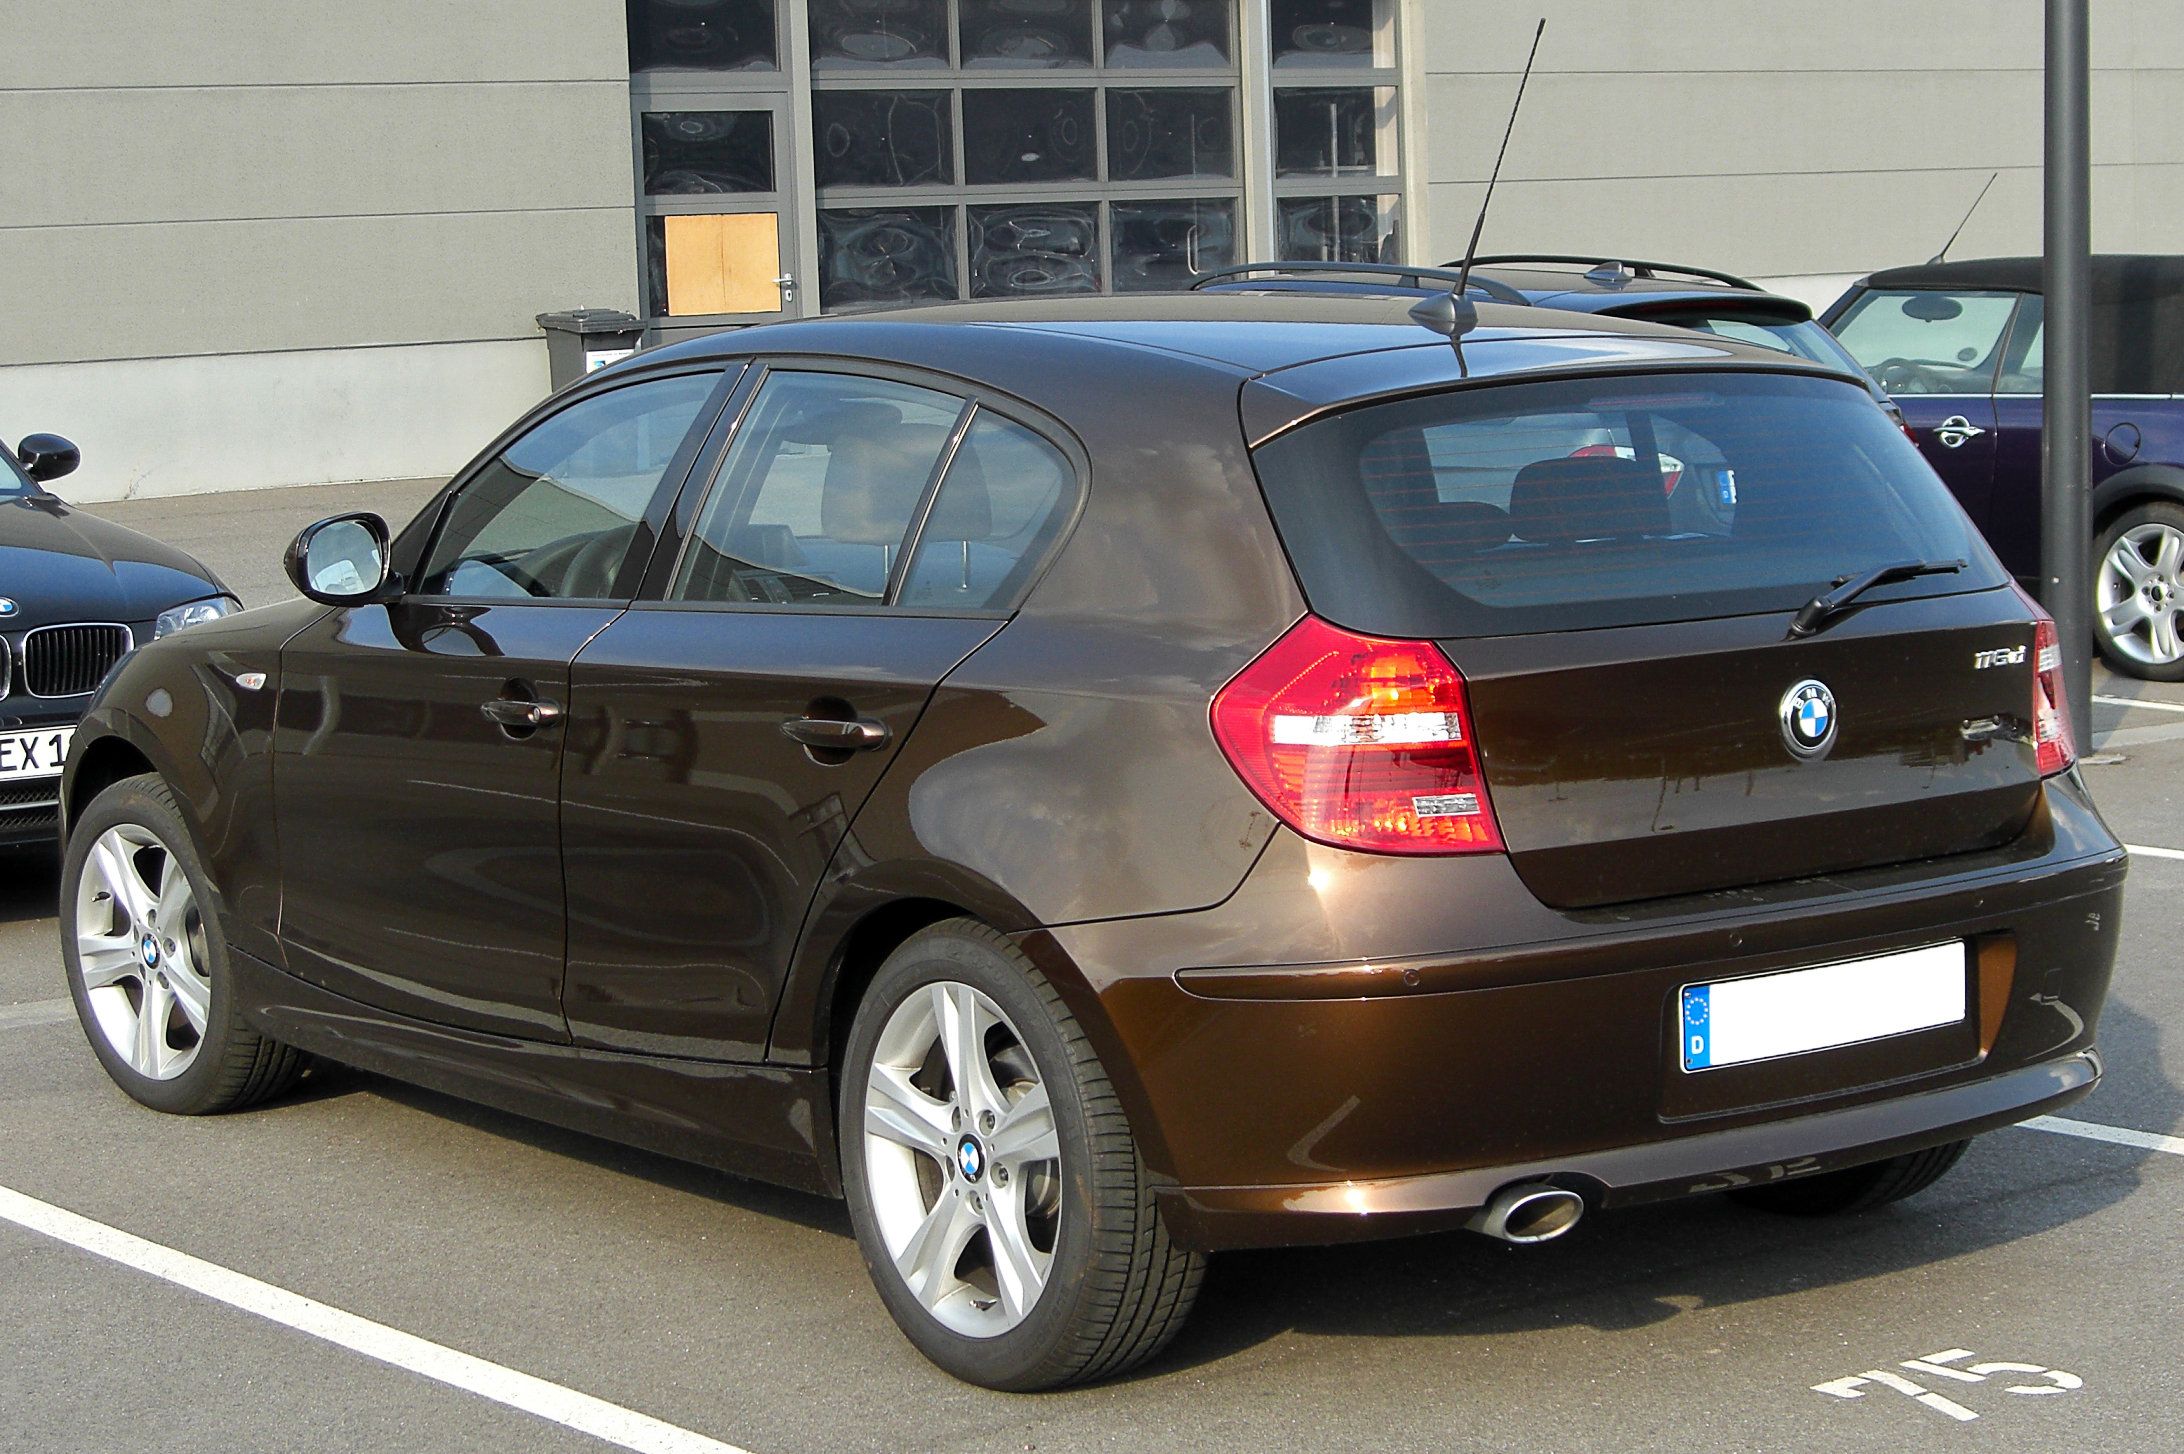 file bmw 116d e87 facelift rear wikimedia commons. Black Bedroom Furniture Sets. Home Design Ideas